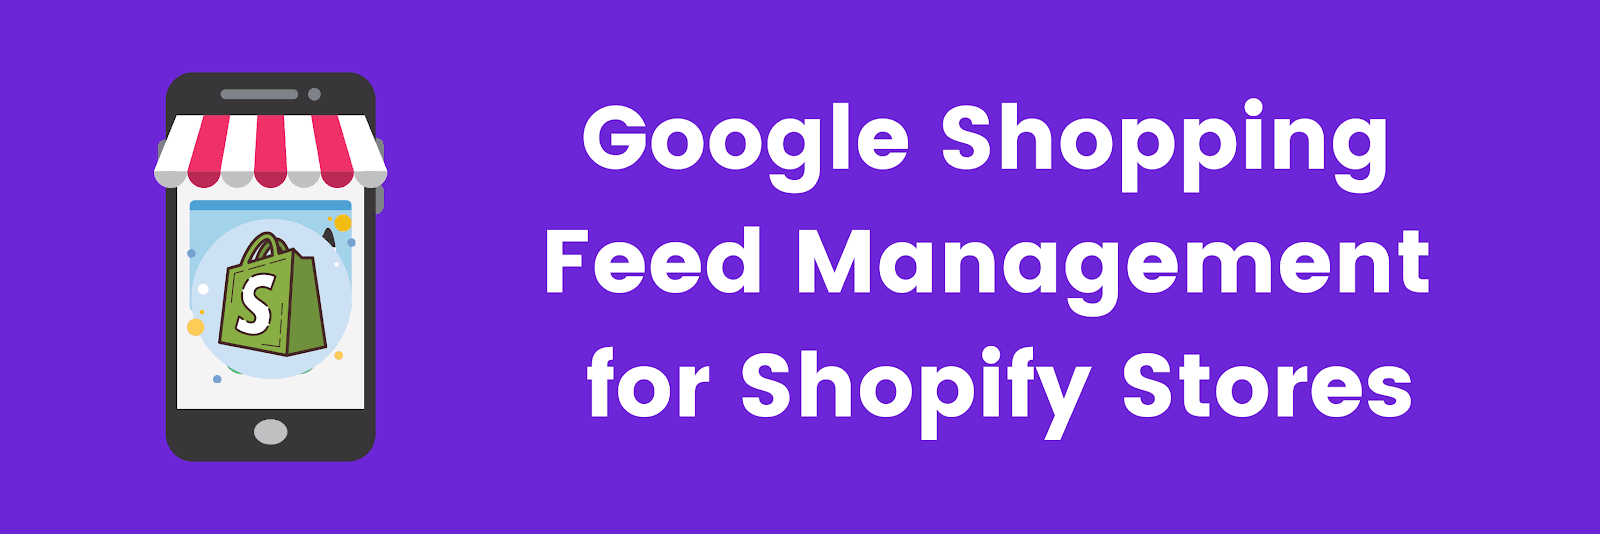 Google Shopping Feed Management for Shopify Stores